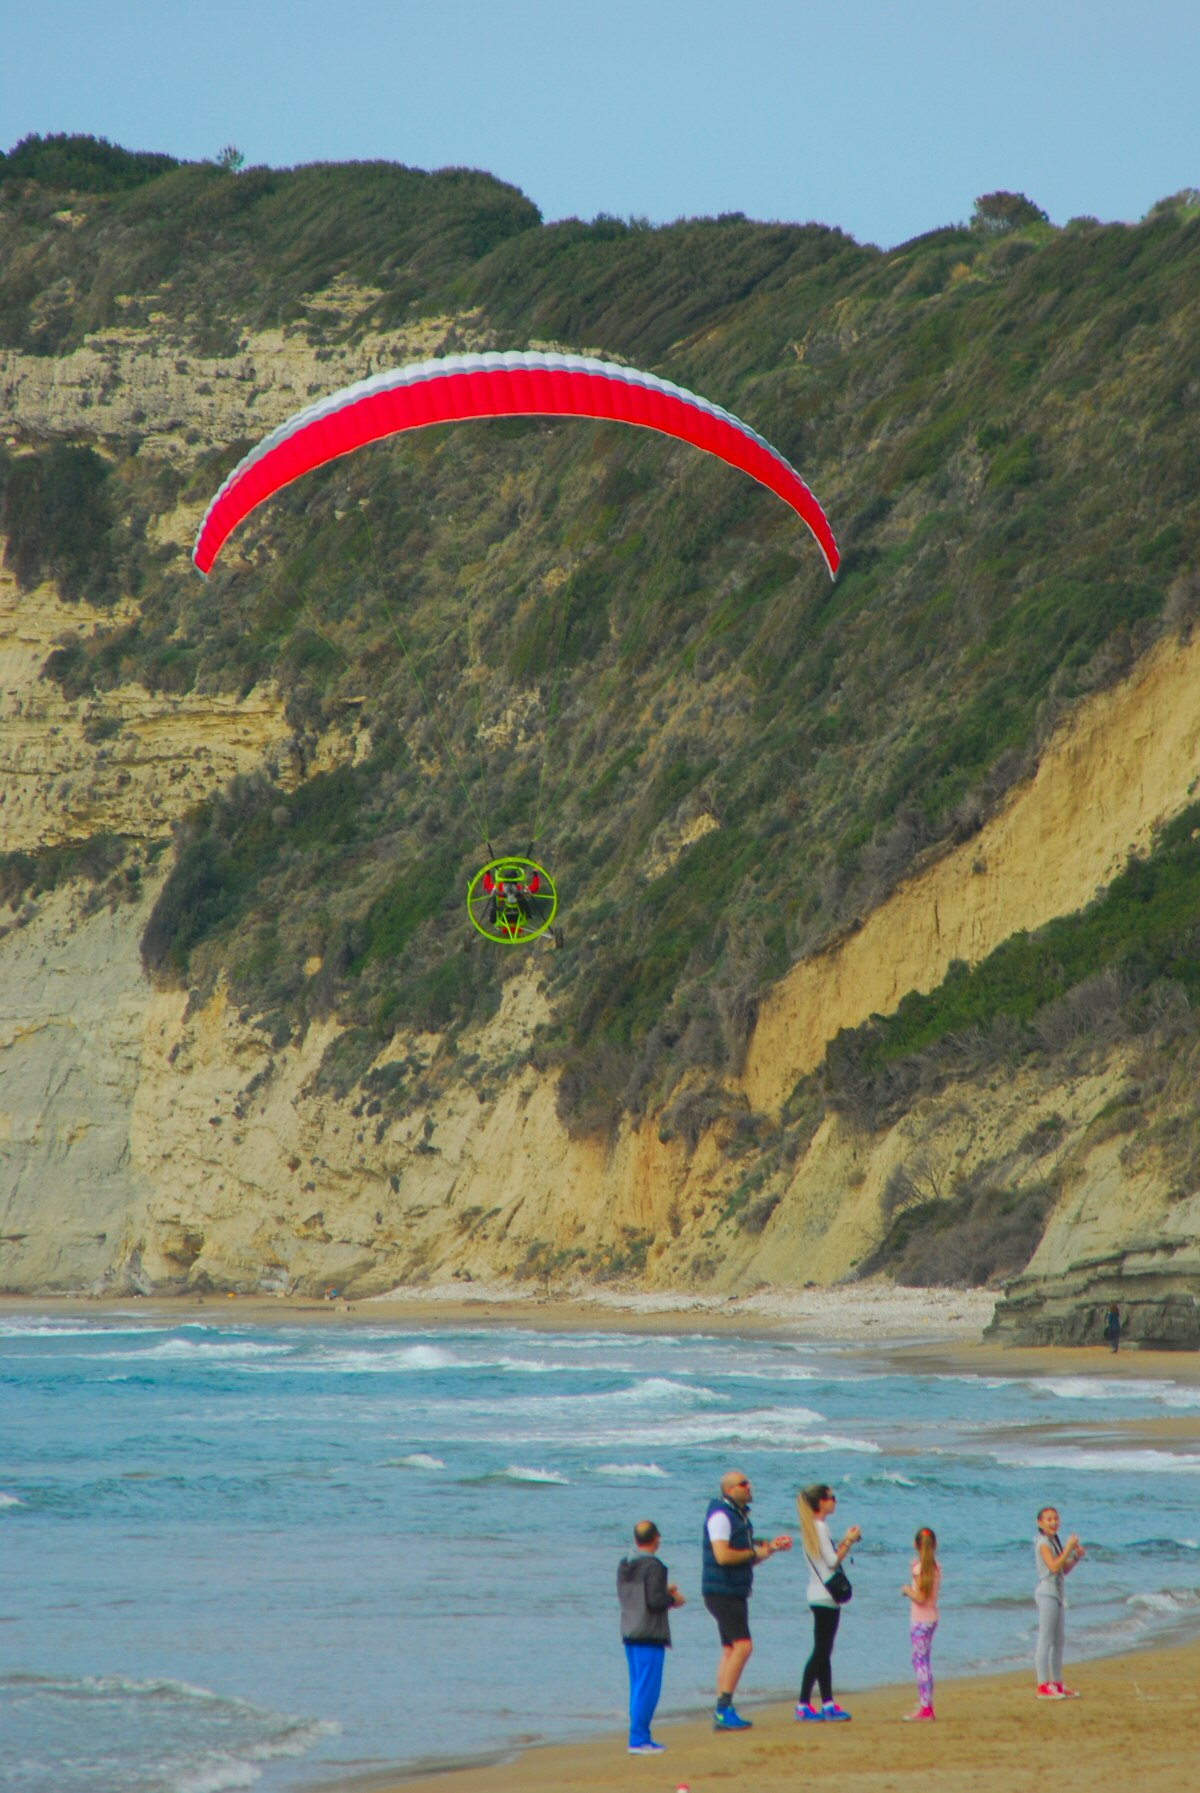 Paramotor heading towards the clif  at Arillas north Beach